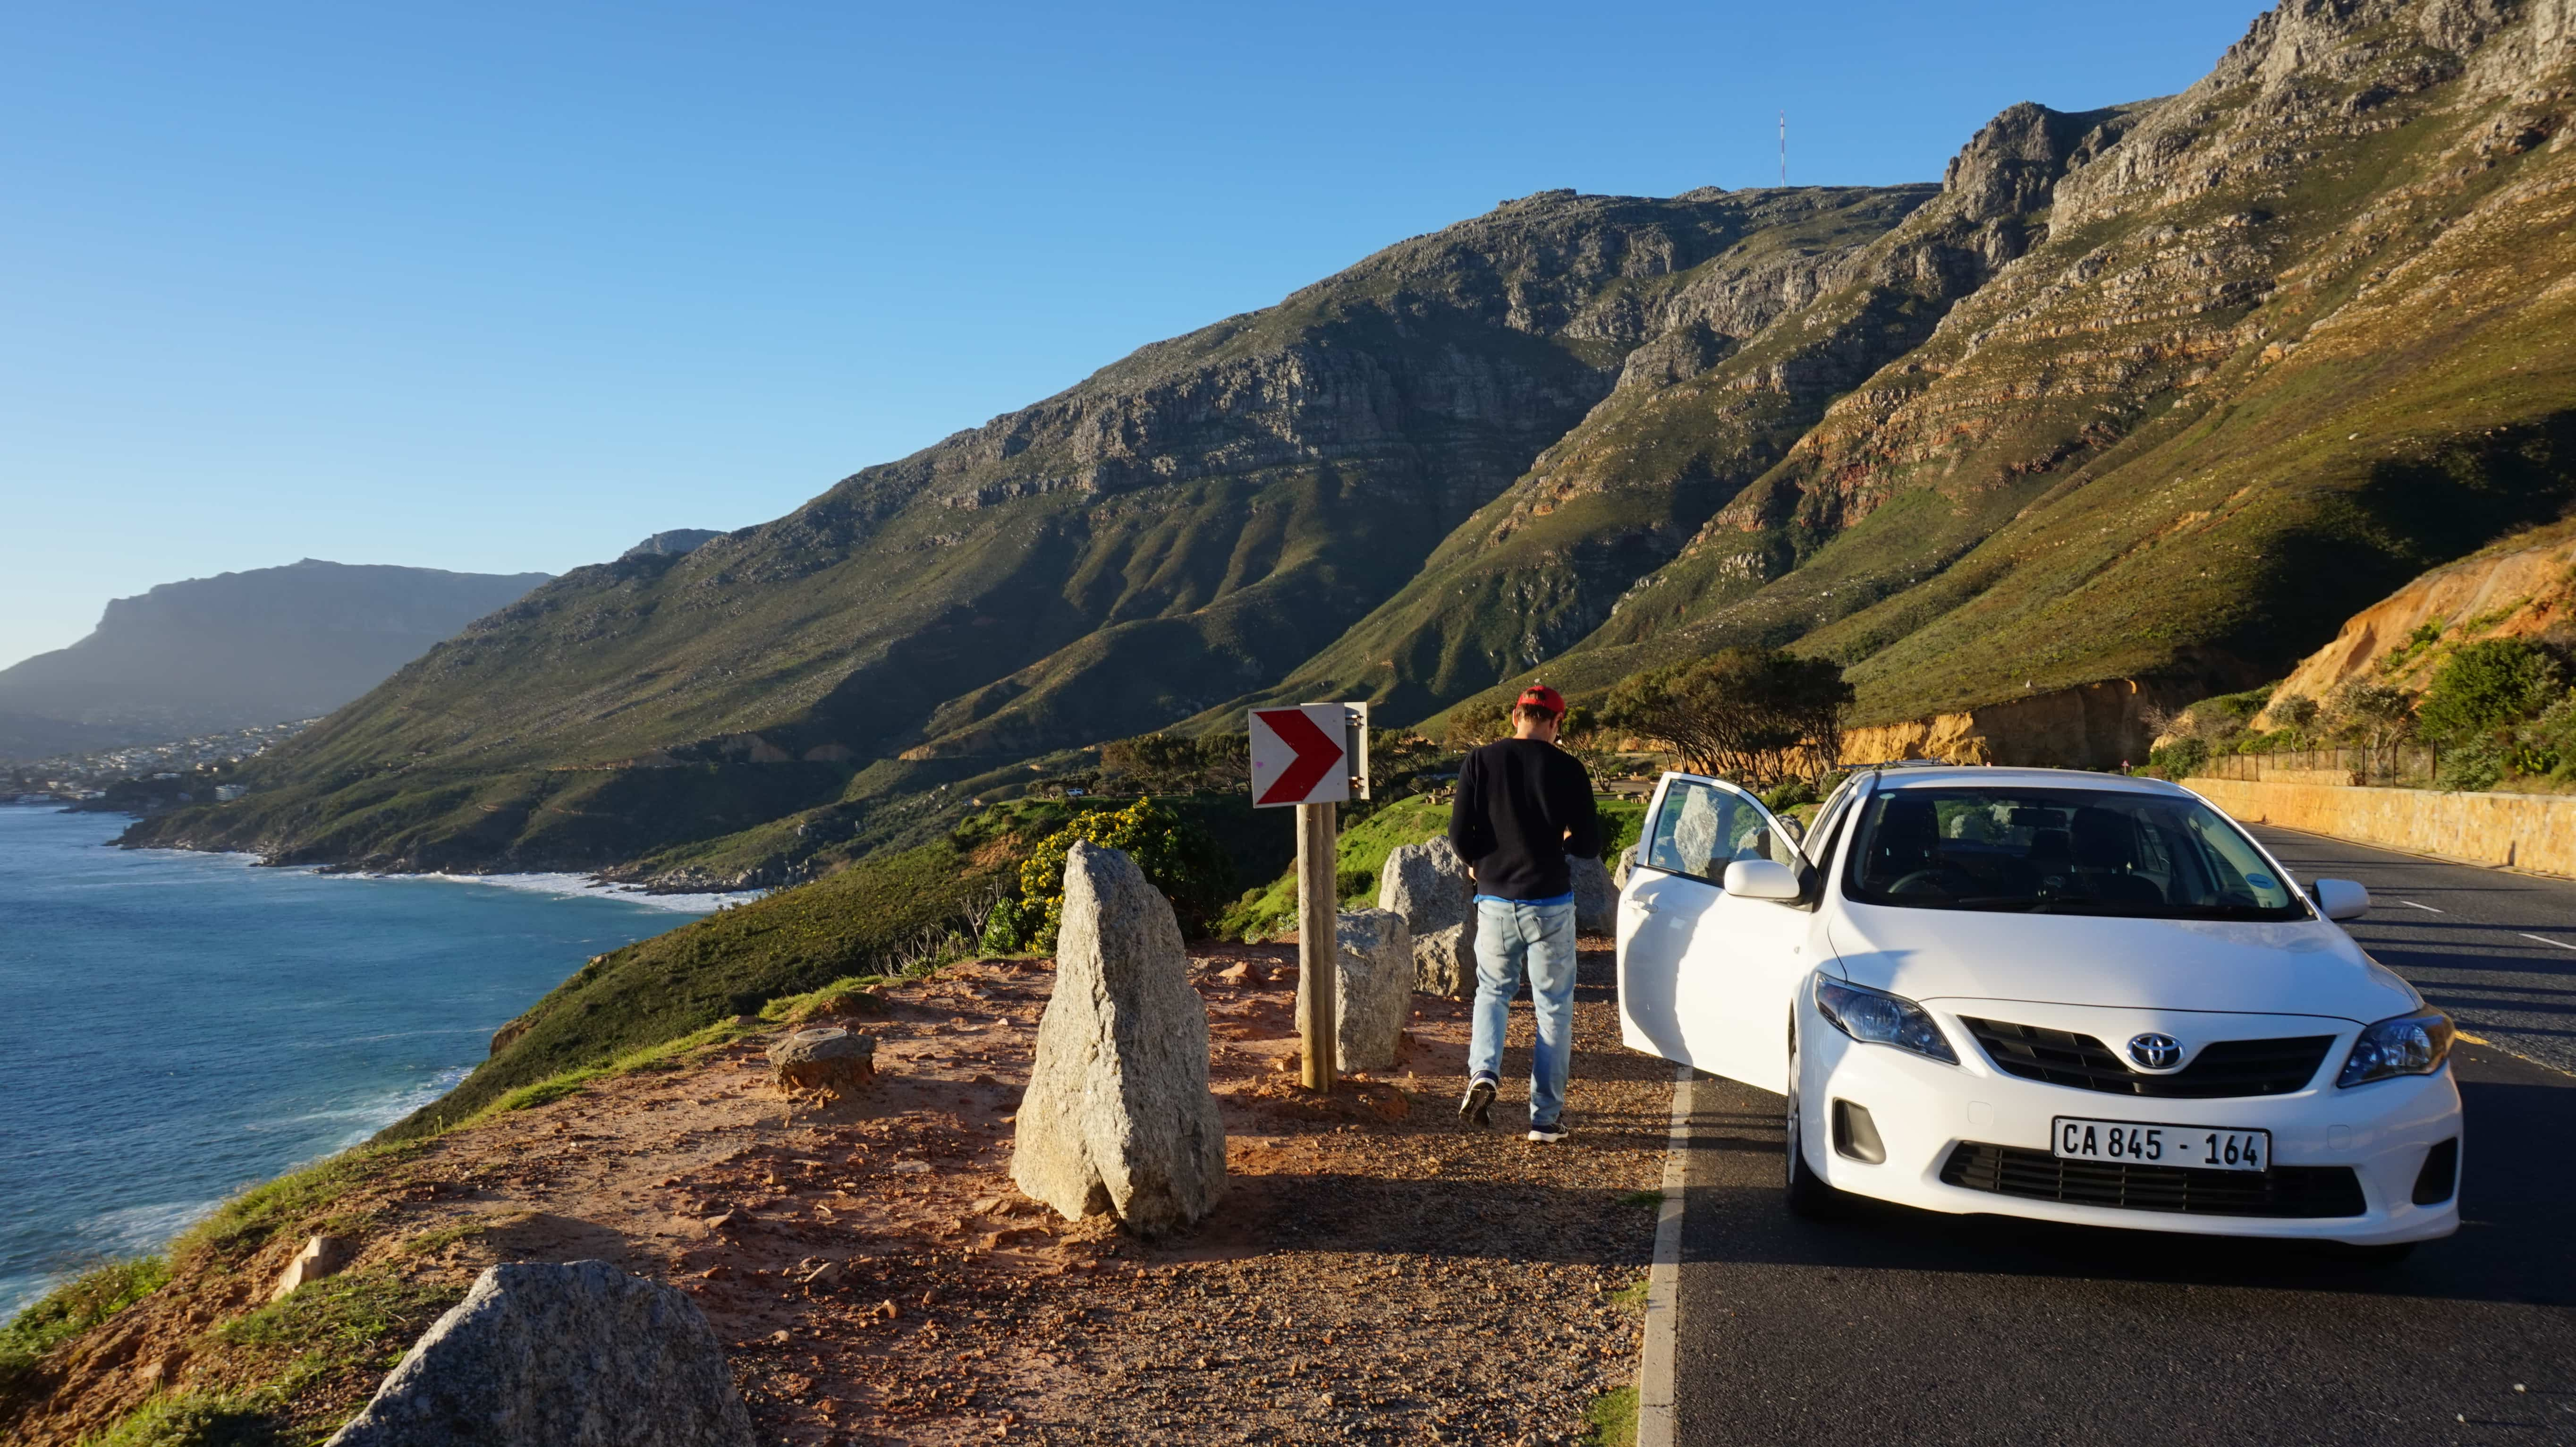 Our rental car in South Africa, driving along the coast near Cape Town